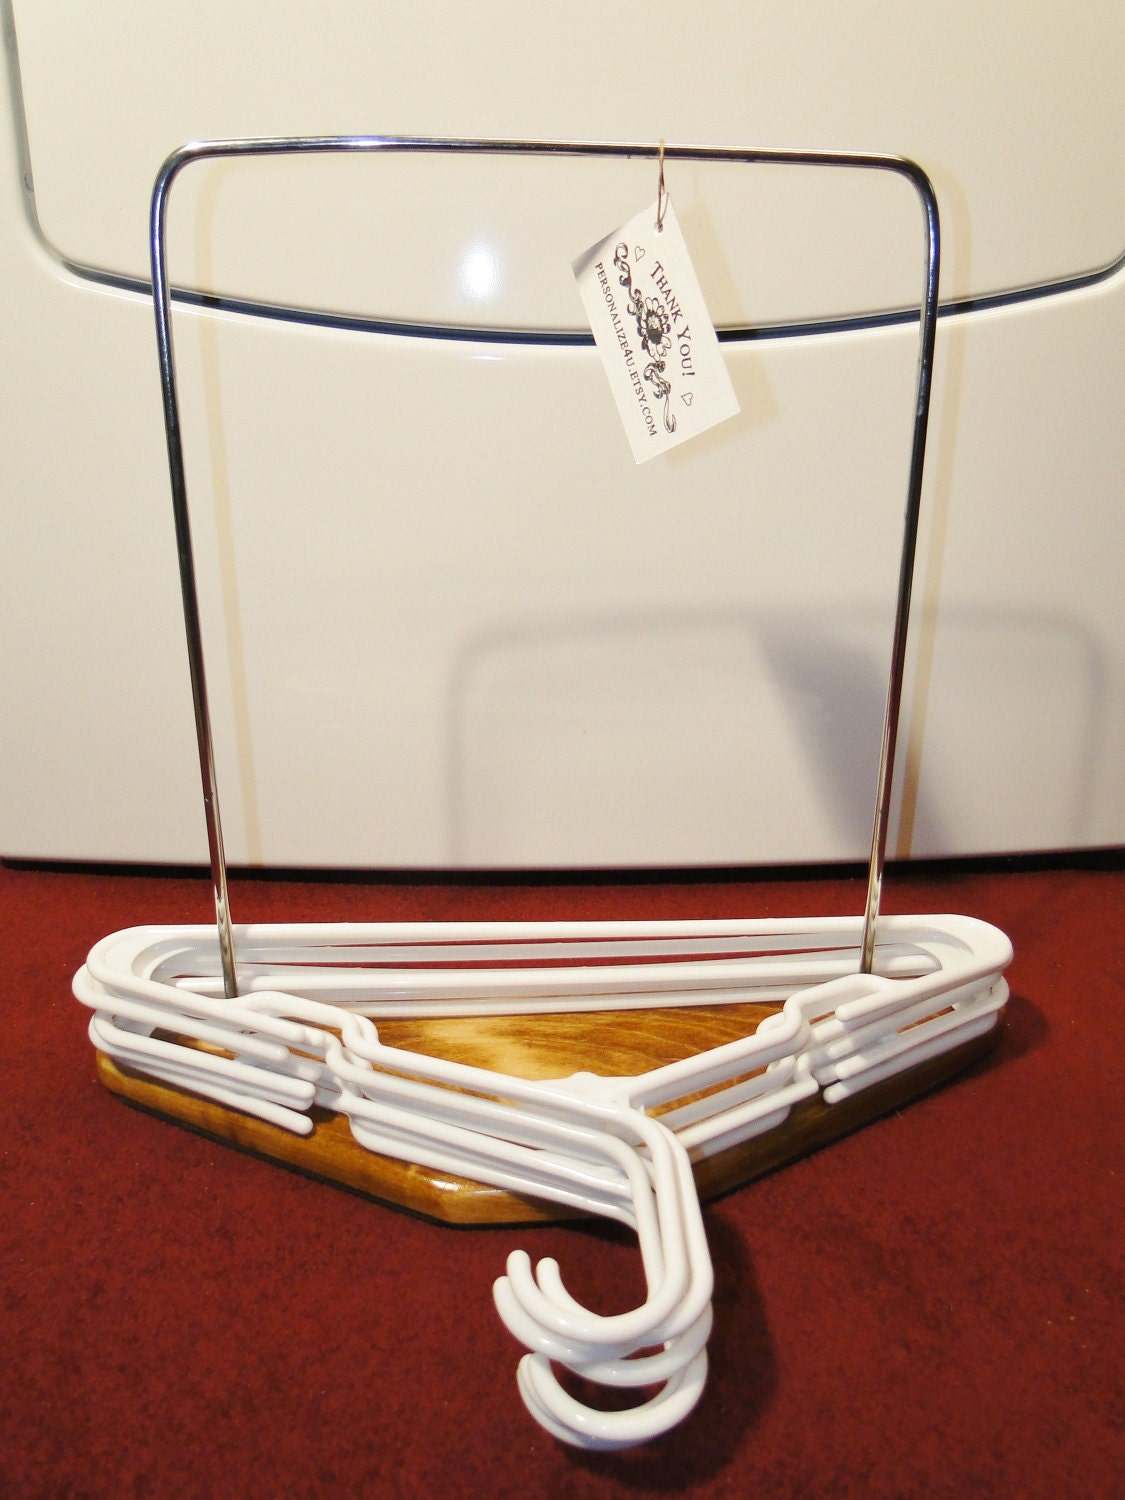 Clothes hanger organizer stand for the laundry room bedroom